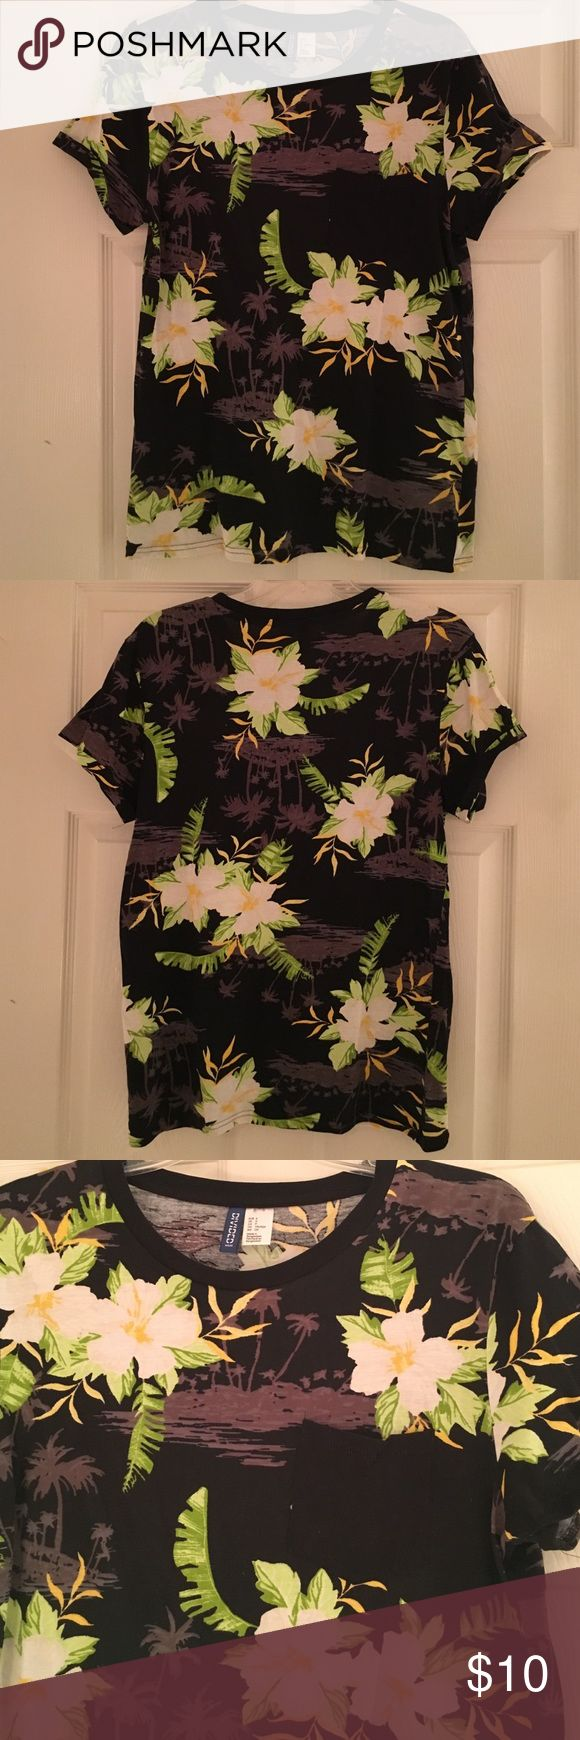 Tropical Hawaiian Tee Black Tee with white hibiscus flowers & grey palm trees. Cuffed sleeve detail & solid black pocket. Technically a men's small, but fits like women's medium. Worn once for a luau! Like-new condition! H&M Tops Tees - Short Sleeve